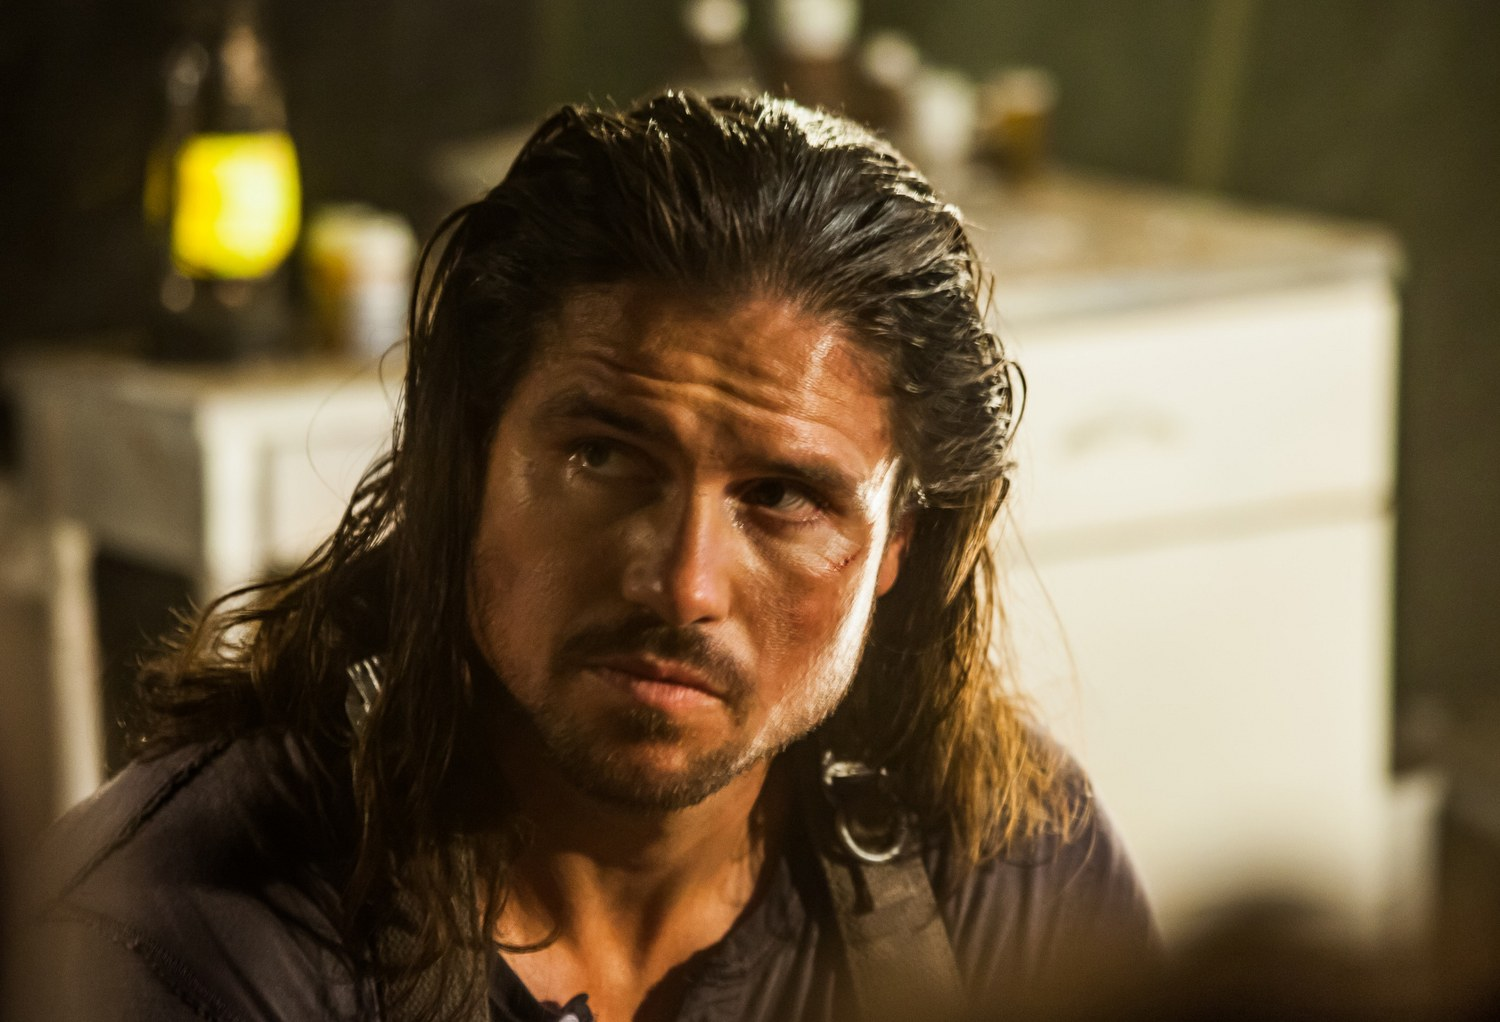 John Hennigan – 3 Hours Until Dead. Photo by Ali Donze